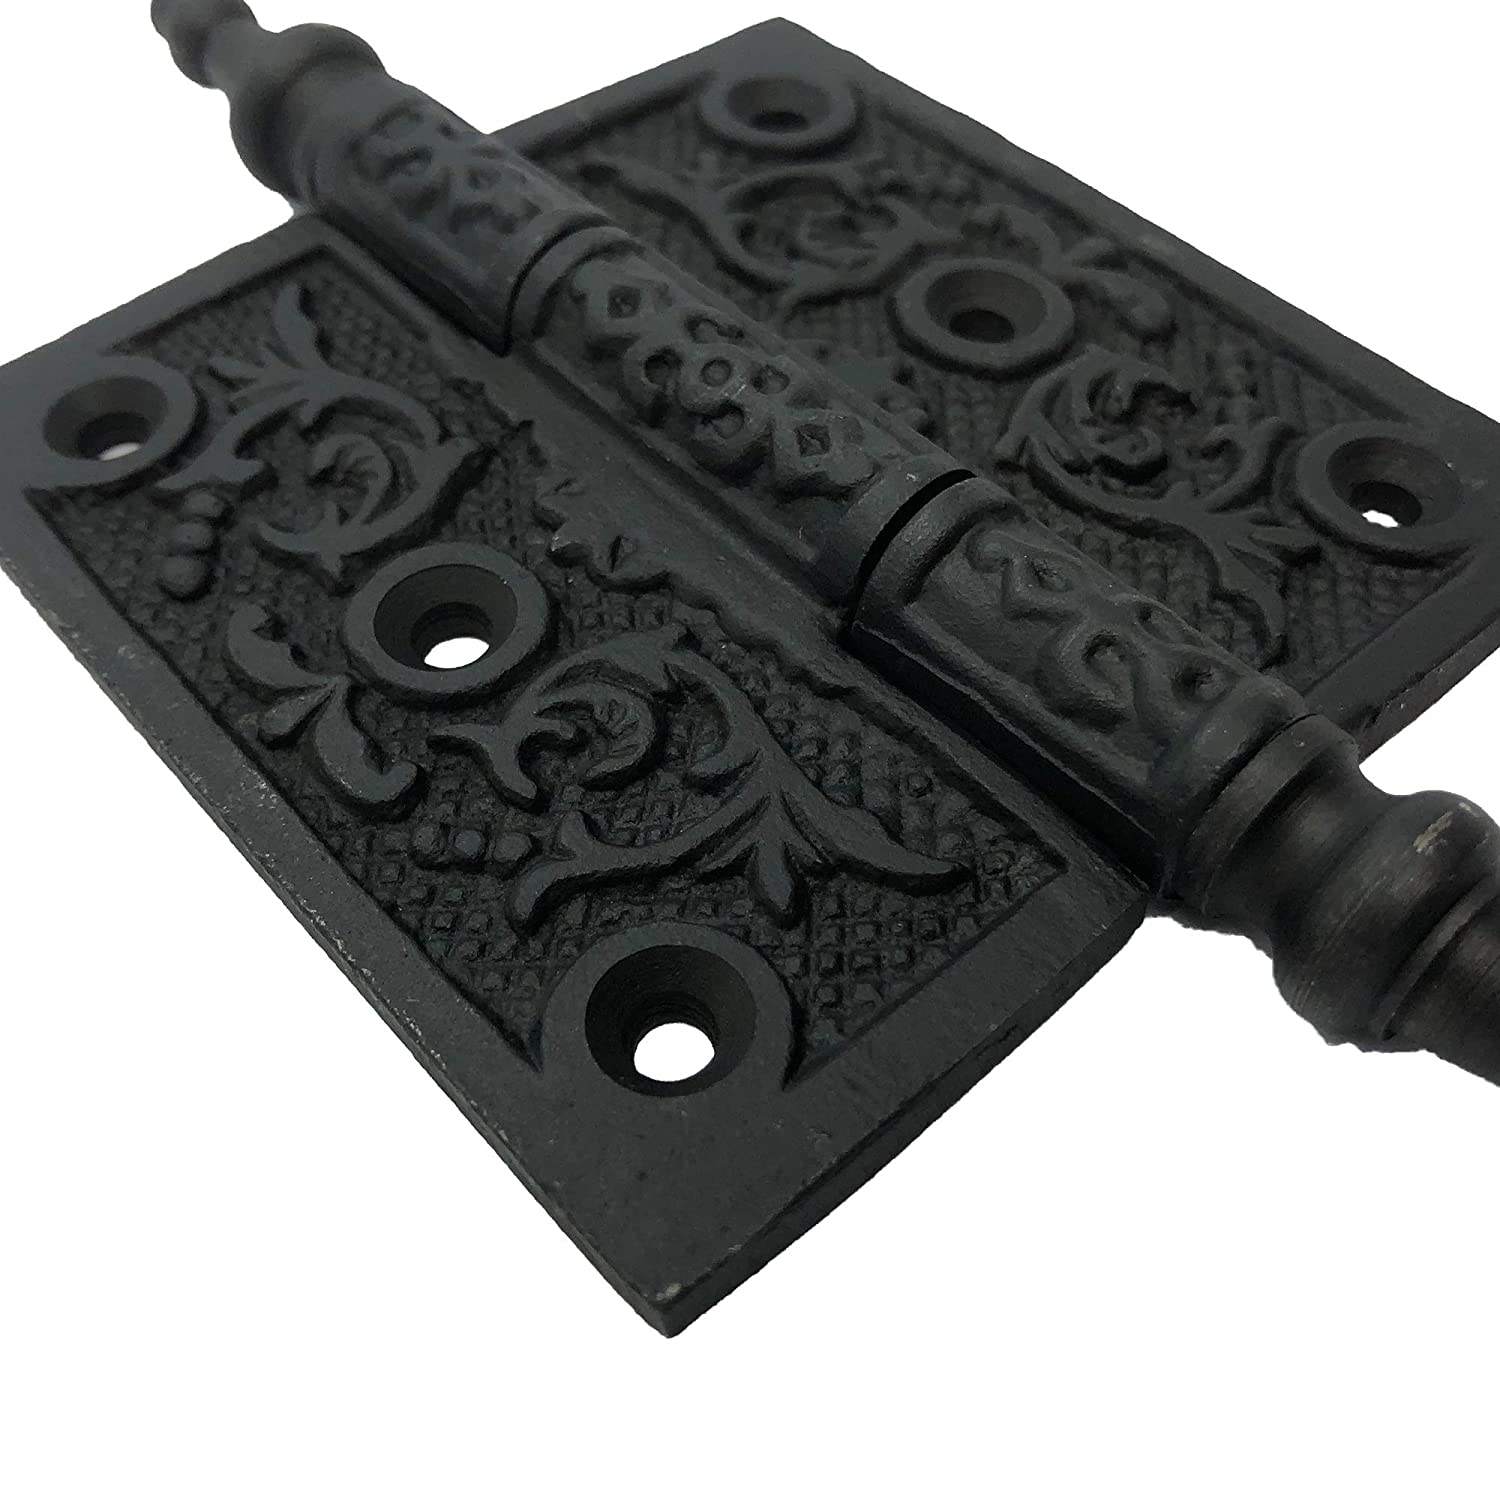 cabinets Antique Style Iron Hinge for Doors Iron Hinge 2 Ornate Iron Victorian Hinges barn Door Hinges 6 HG-101 Gates